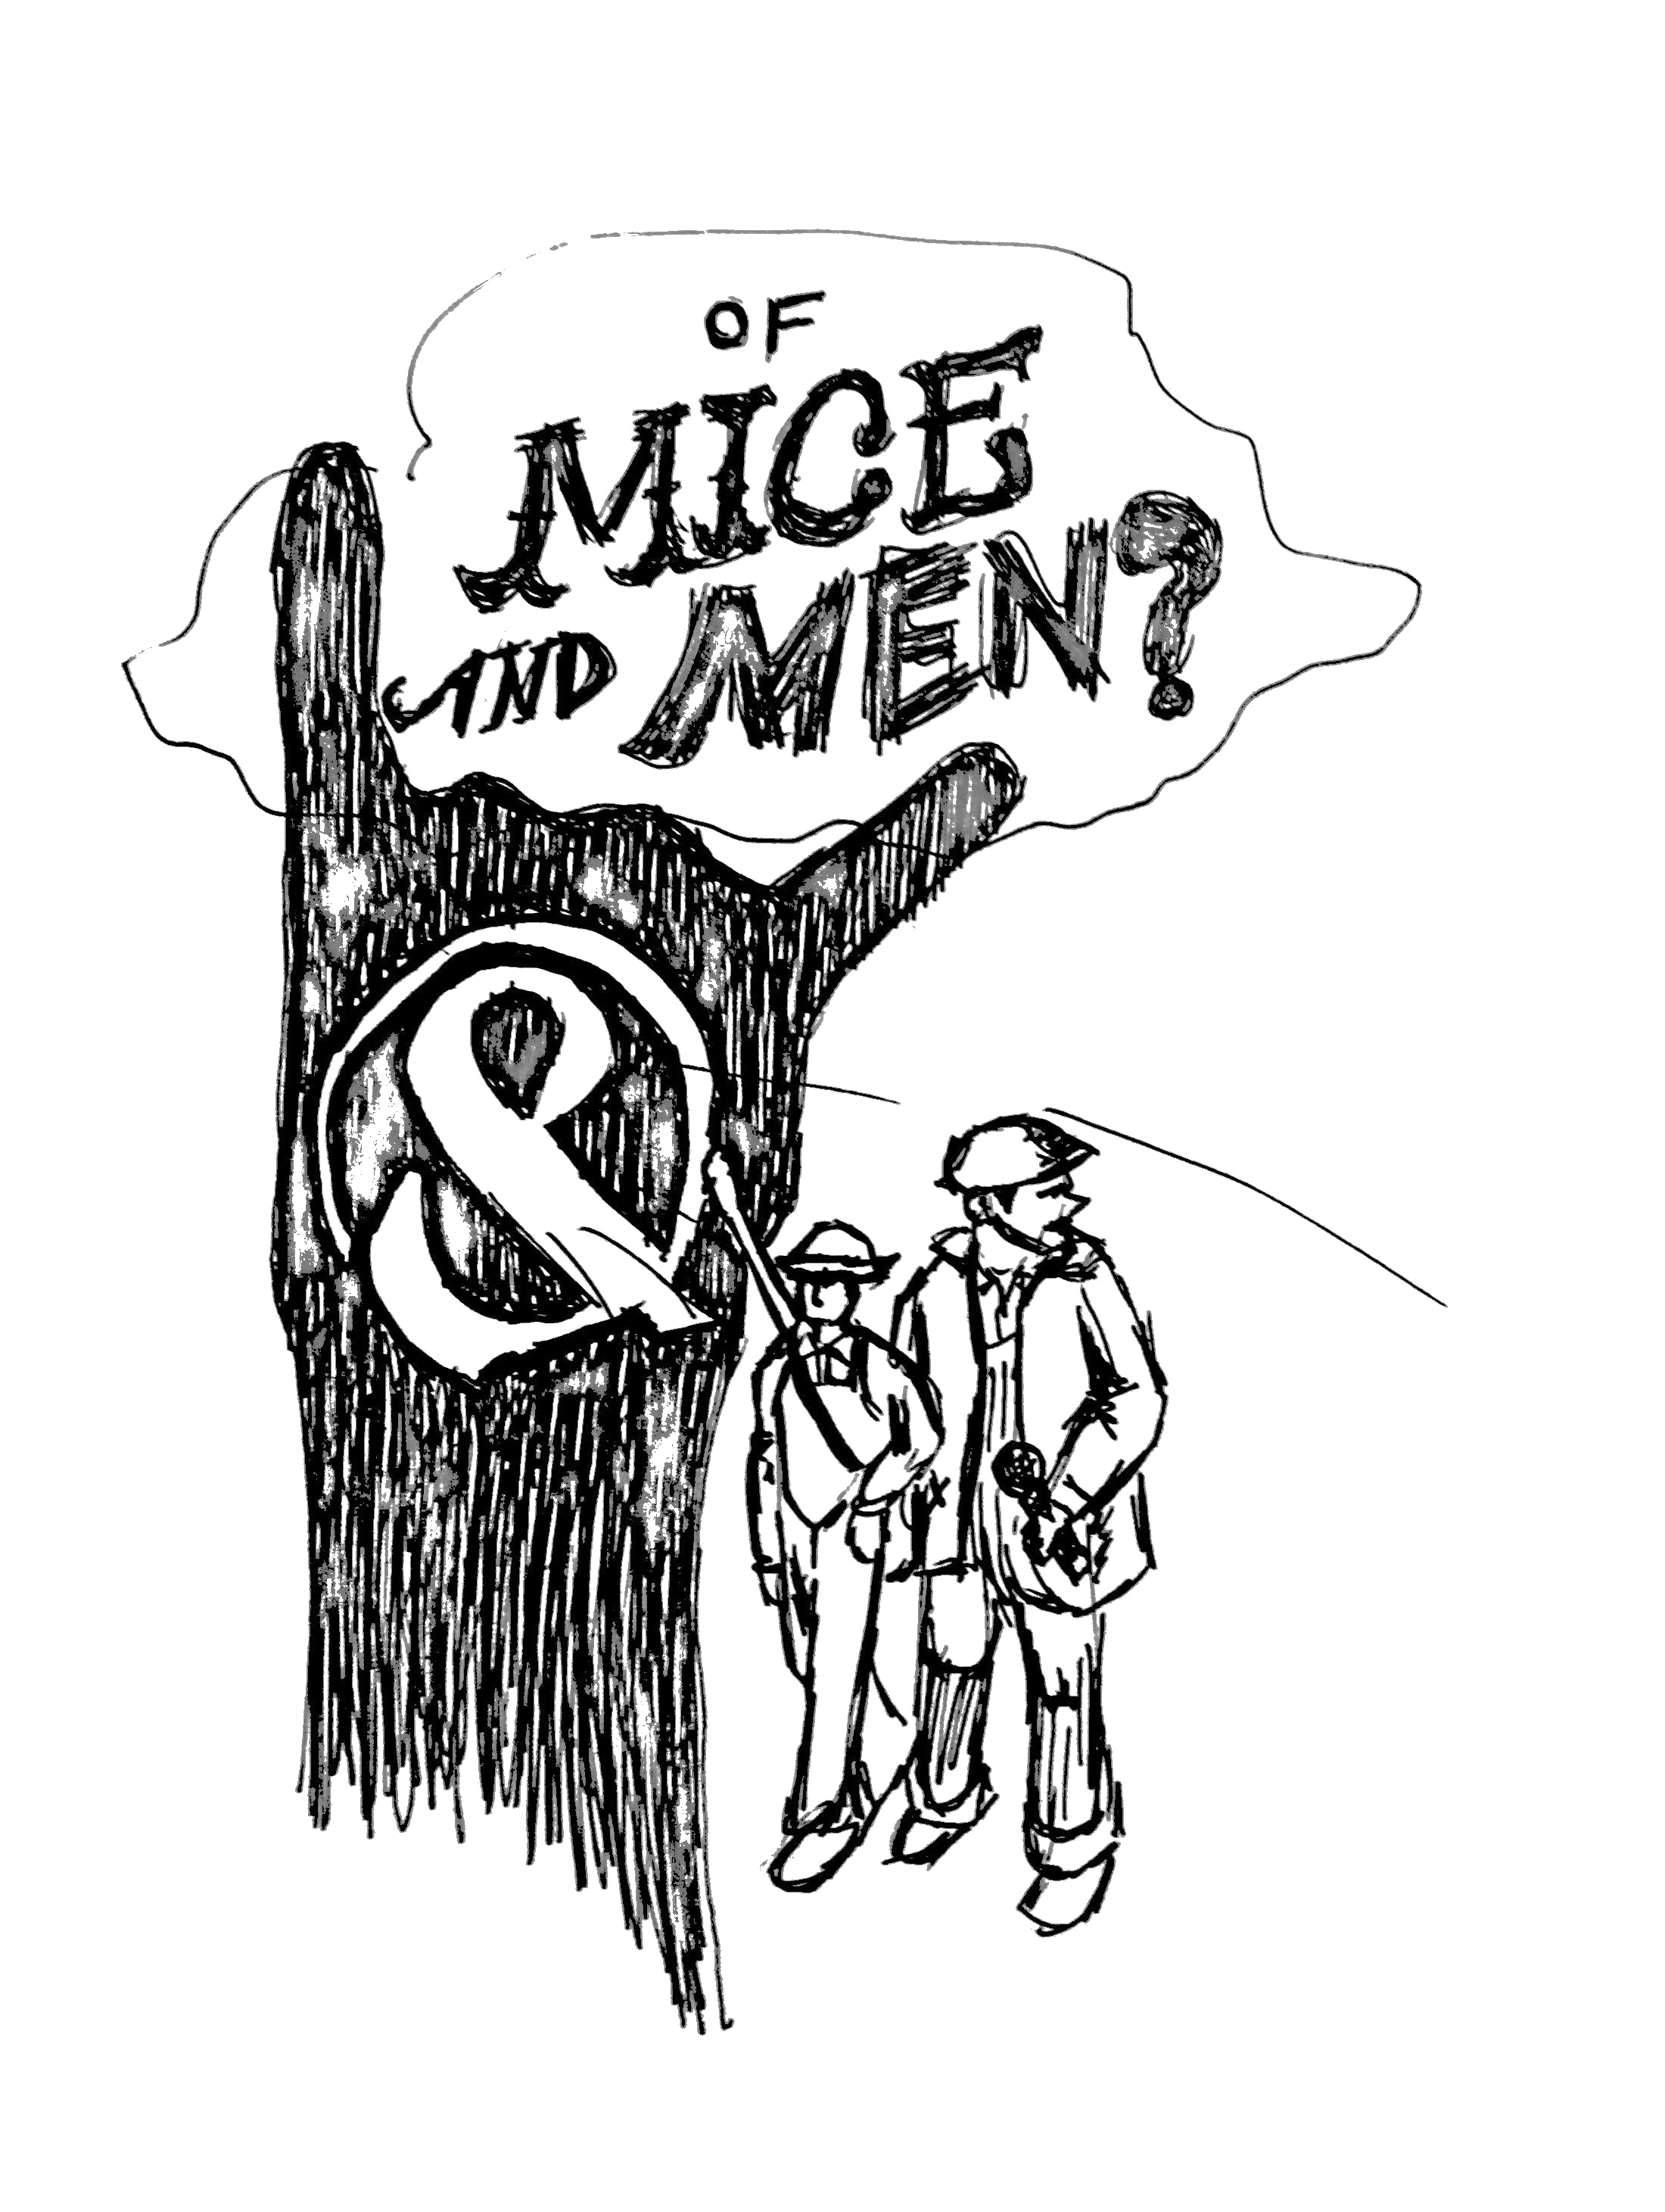 Drawing lyrics. Of mice and men